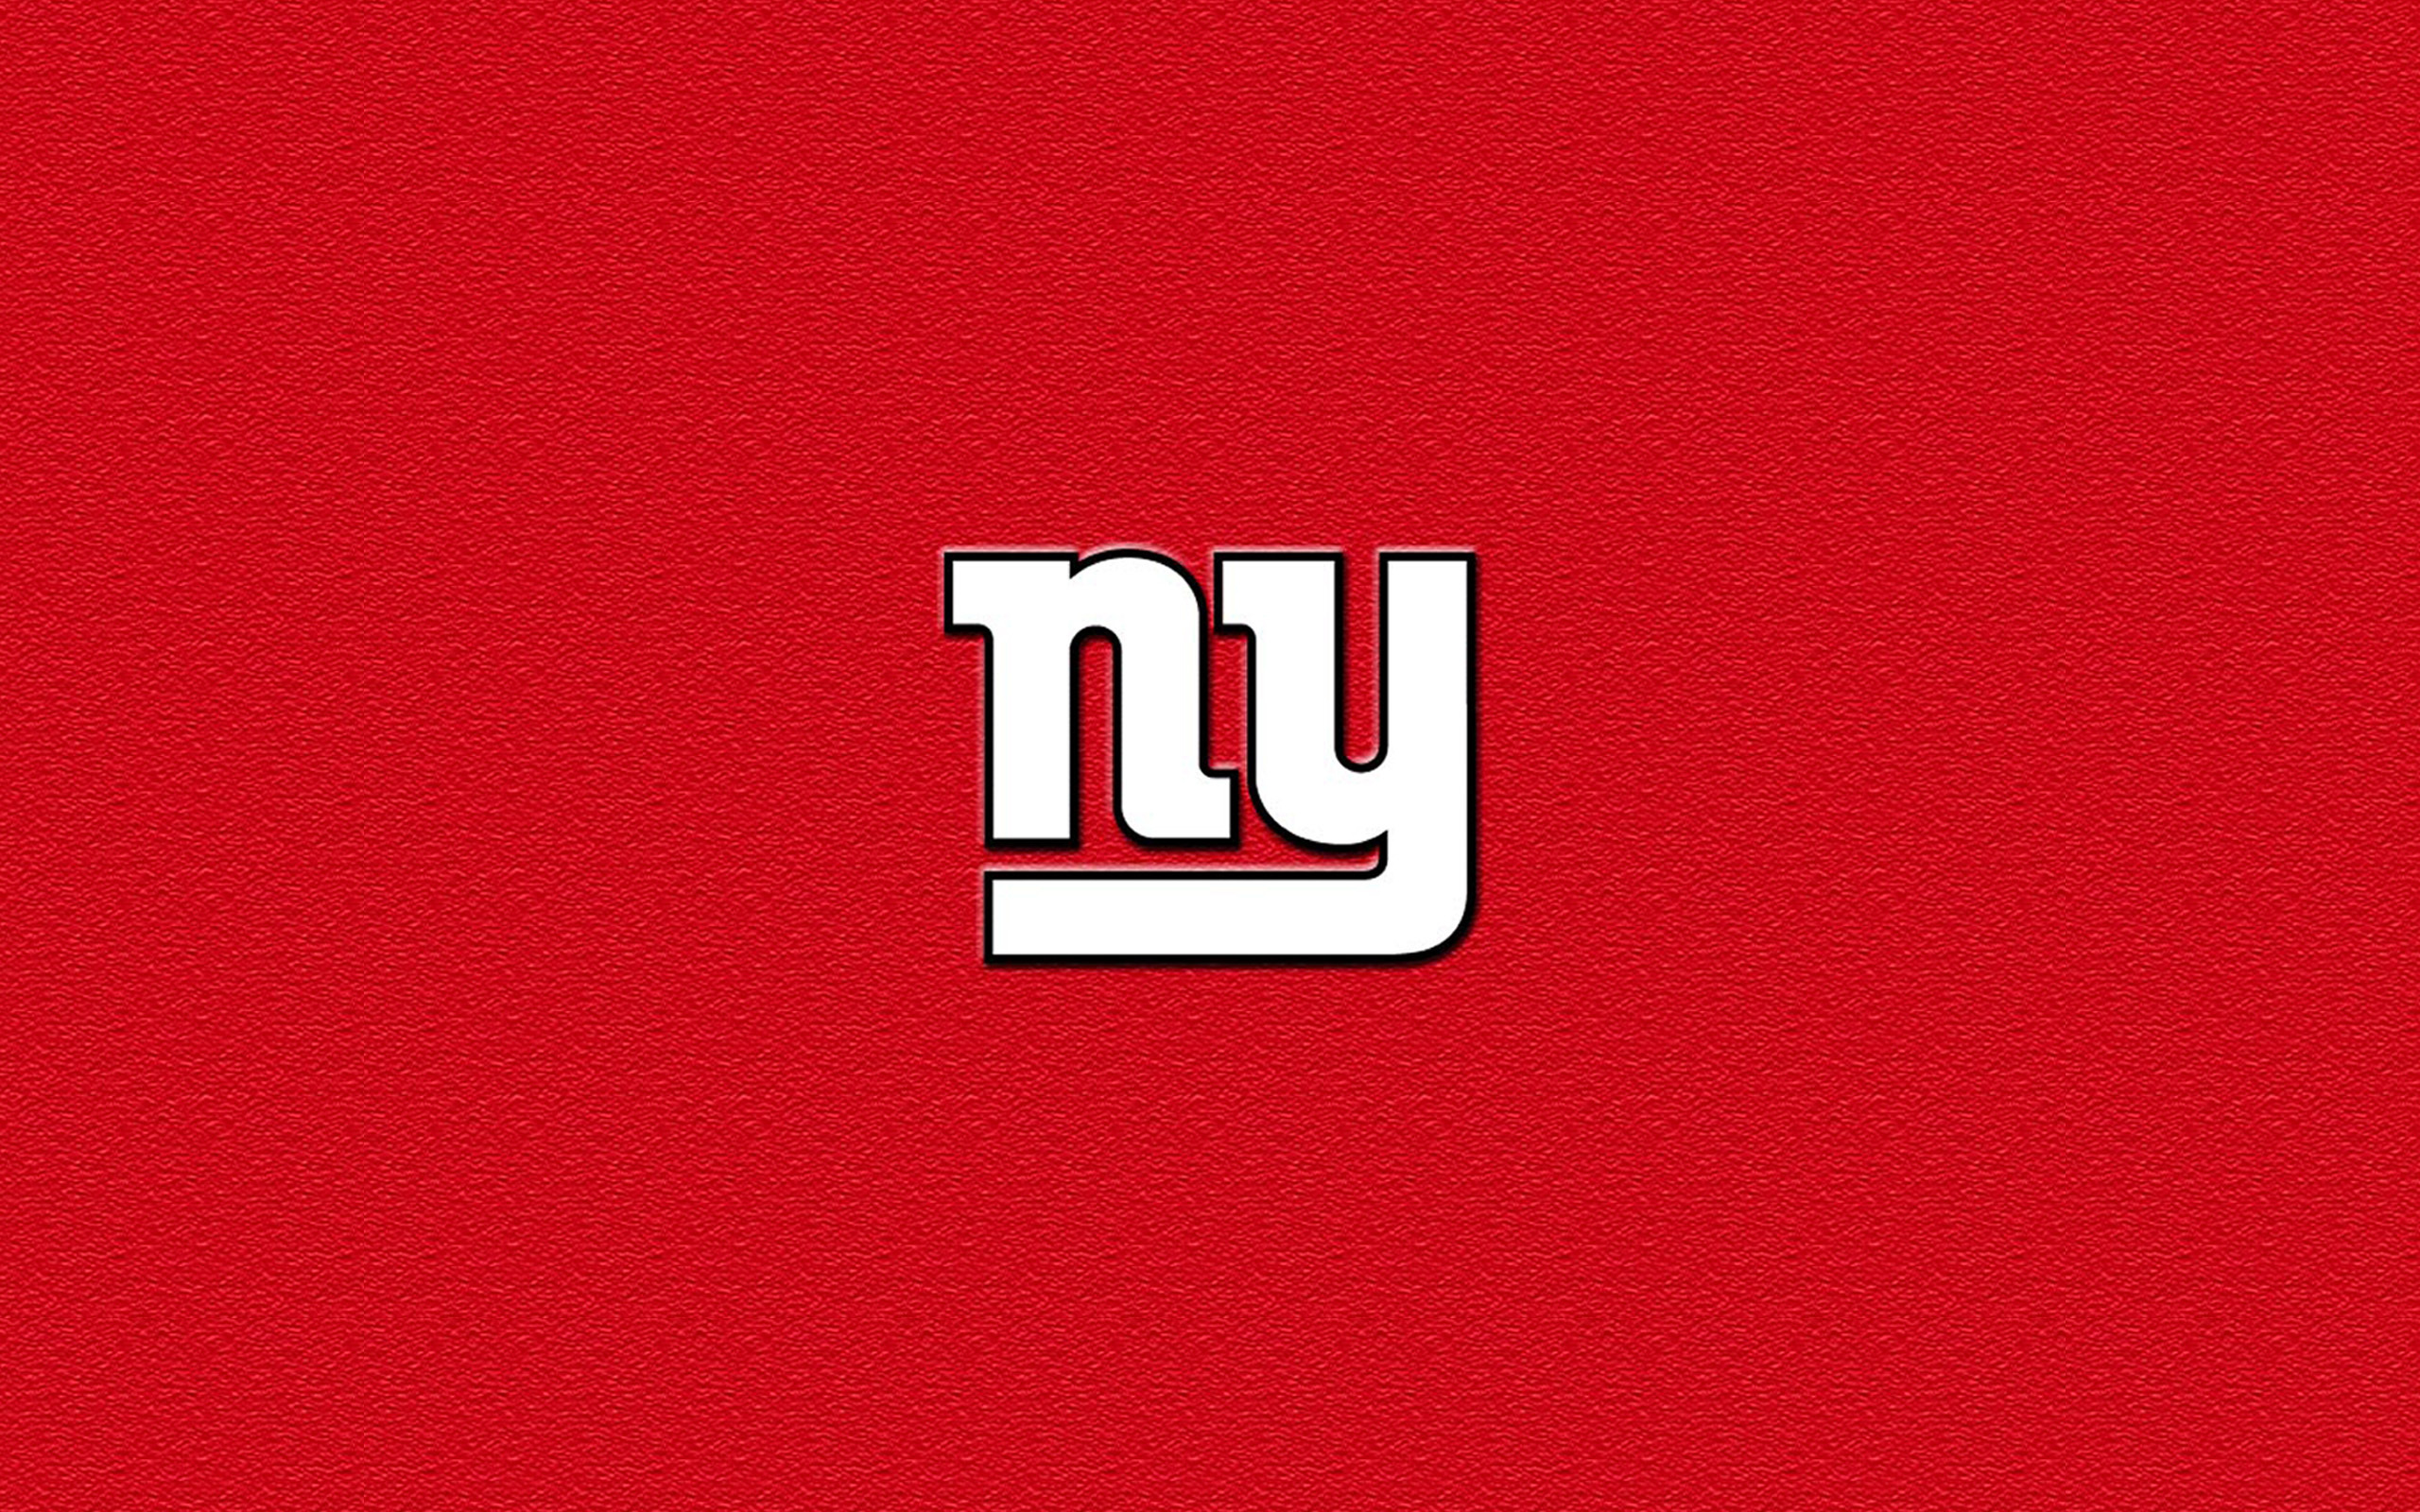 Giants Wallpaper Hd Posted By Ethan Johnson